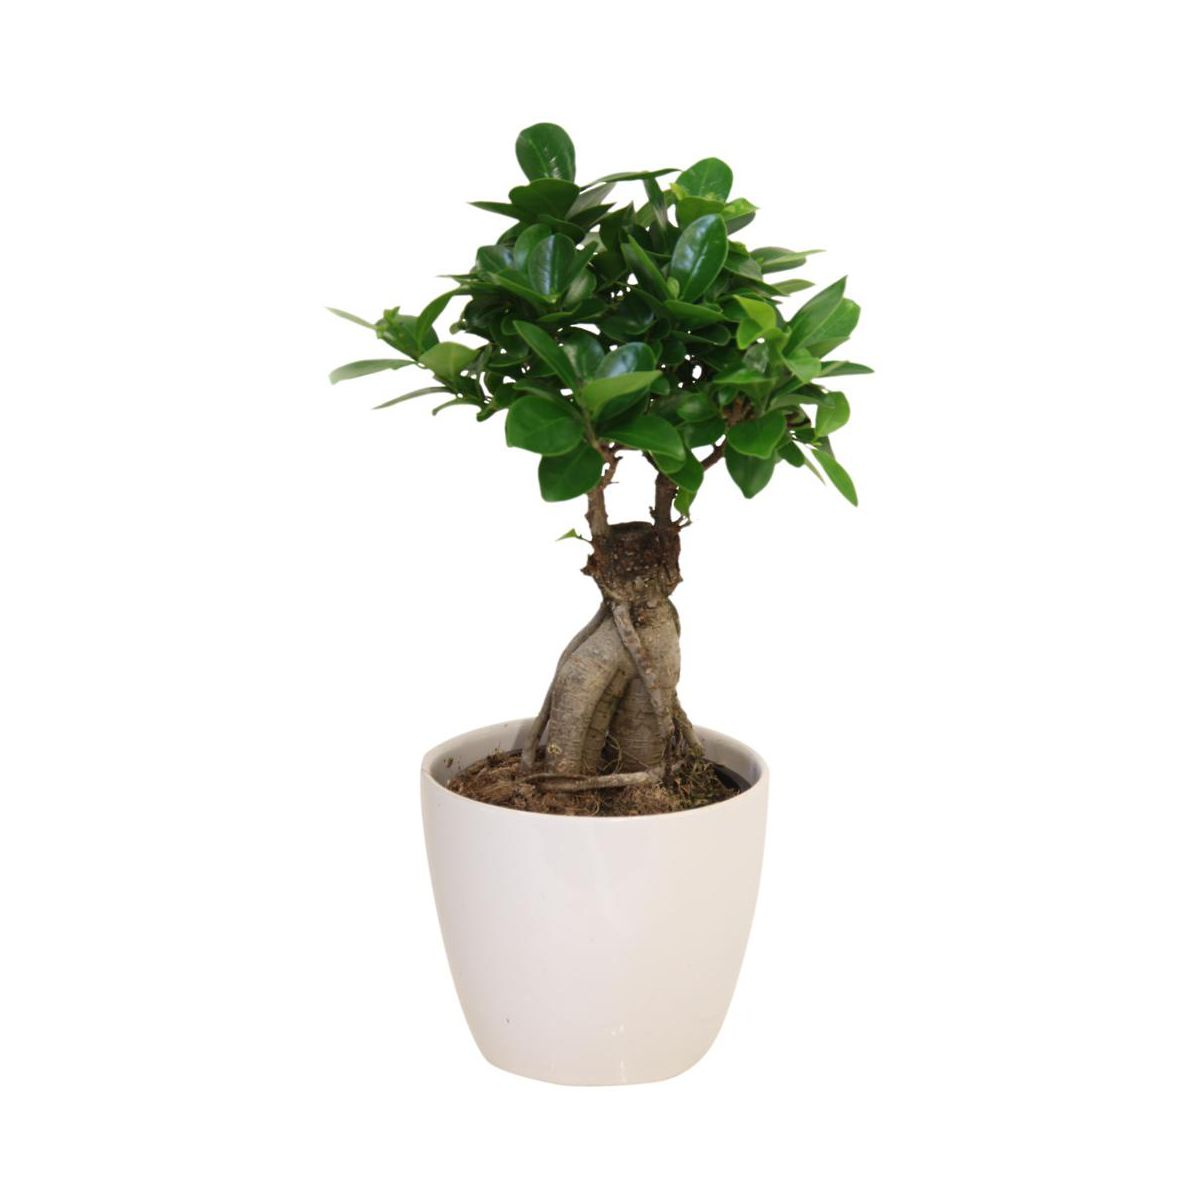 Pin ficus ginsengjpg on pinterest - Bonsai ficus ginseng entretien ...